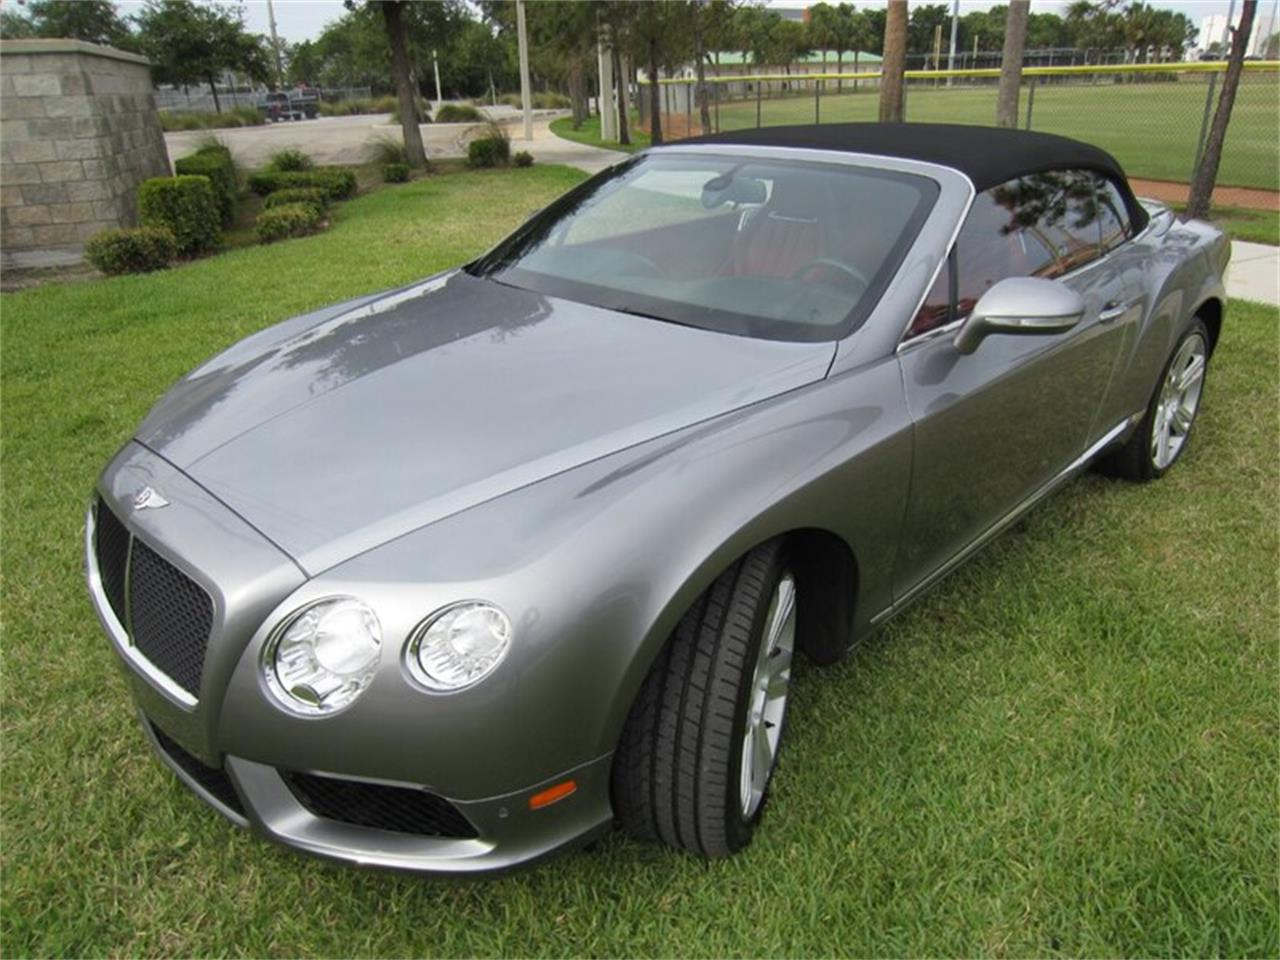 2013 Bentley Continental GTC V8 for sale in Delray Beach, FL – photo 19